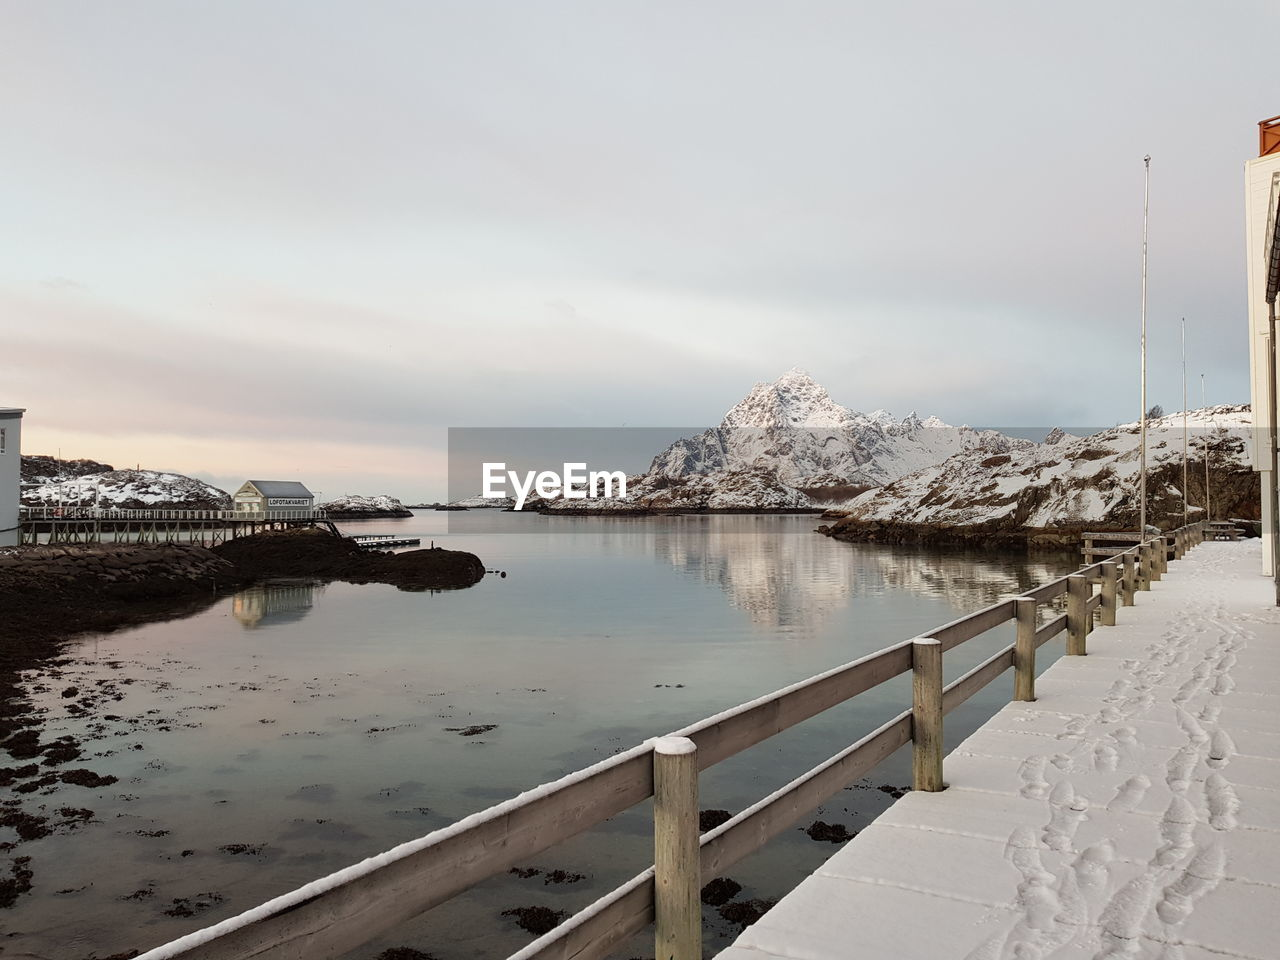 water, sky, nature, scenics - nature, railing, no people, cold temperature, tranquil scene, winter, snow, tranquility, sea, beauty in nature, architecture, day, built structure, cloud - sky, reflection, outdoors